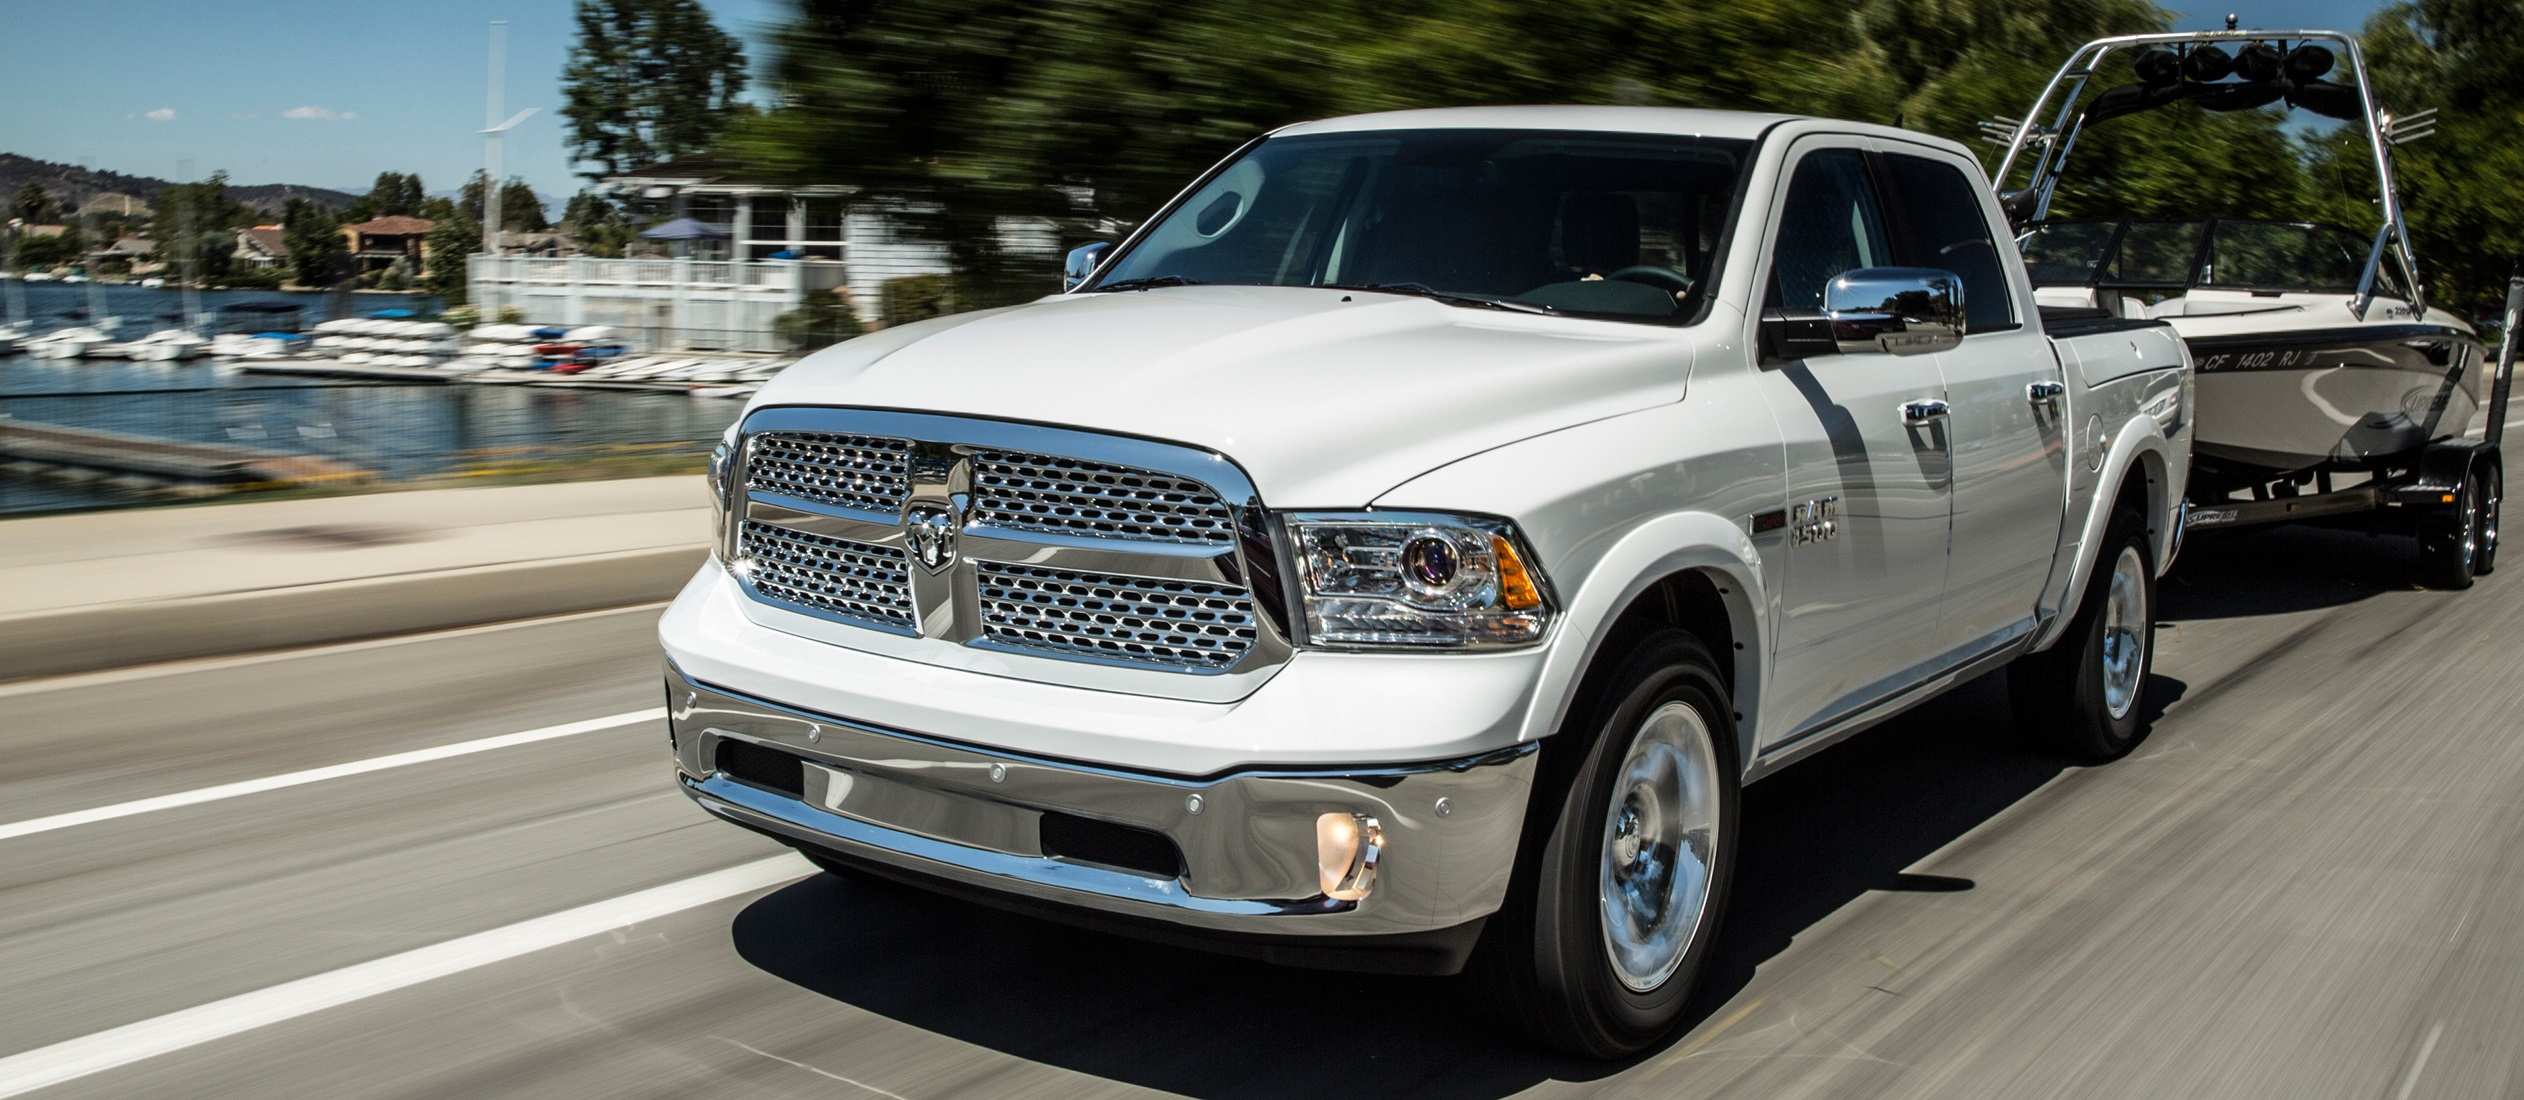 Ram Towing Capacity >> Ram 1500 And Towing Capacity Differences Aventura Chrysler Jeep